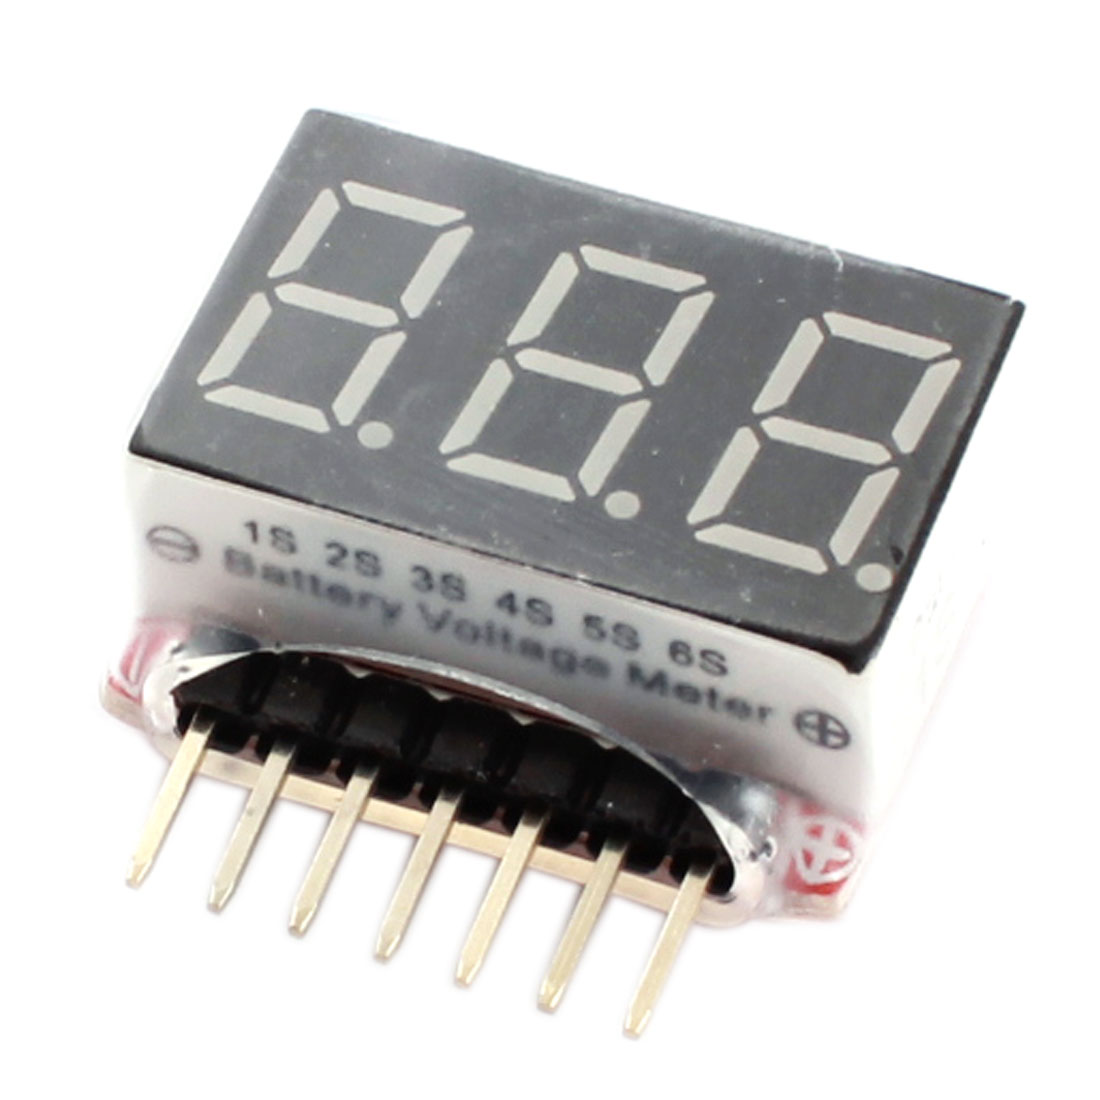 RC Model LED Display 1S-6S Cells Lipo Battery Voltage Indicator Monitor Meter